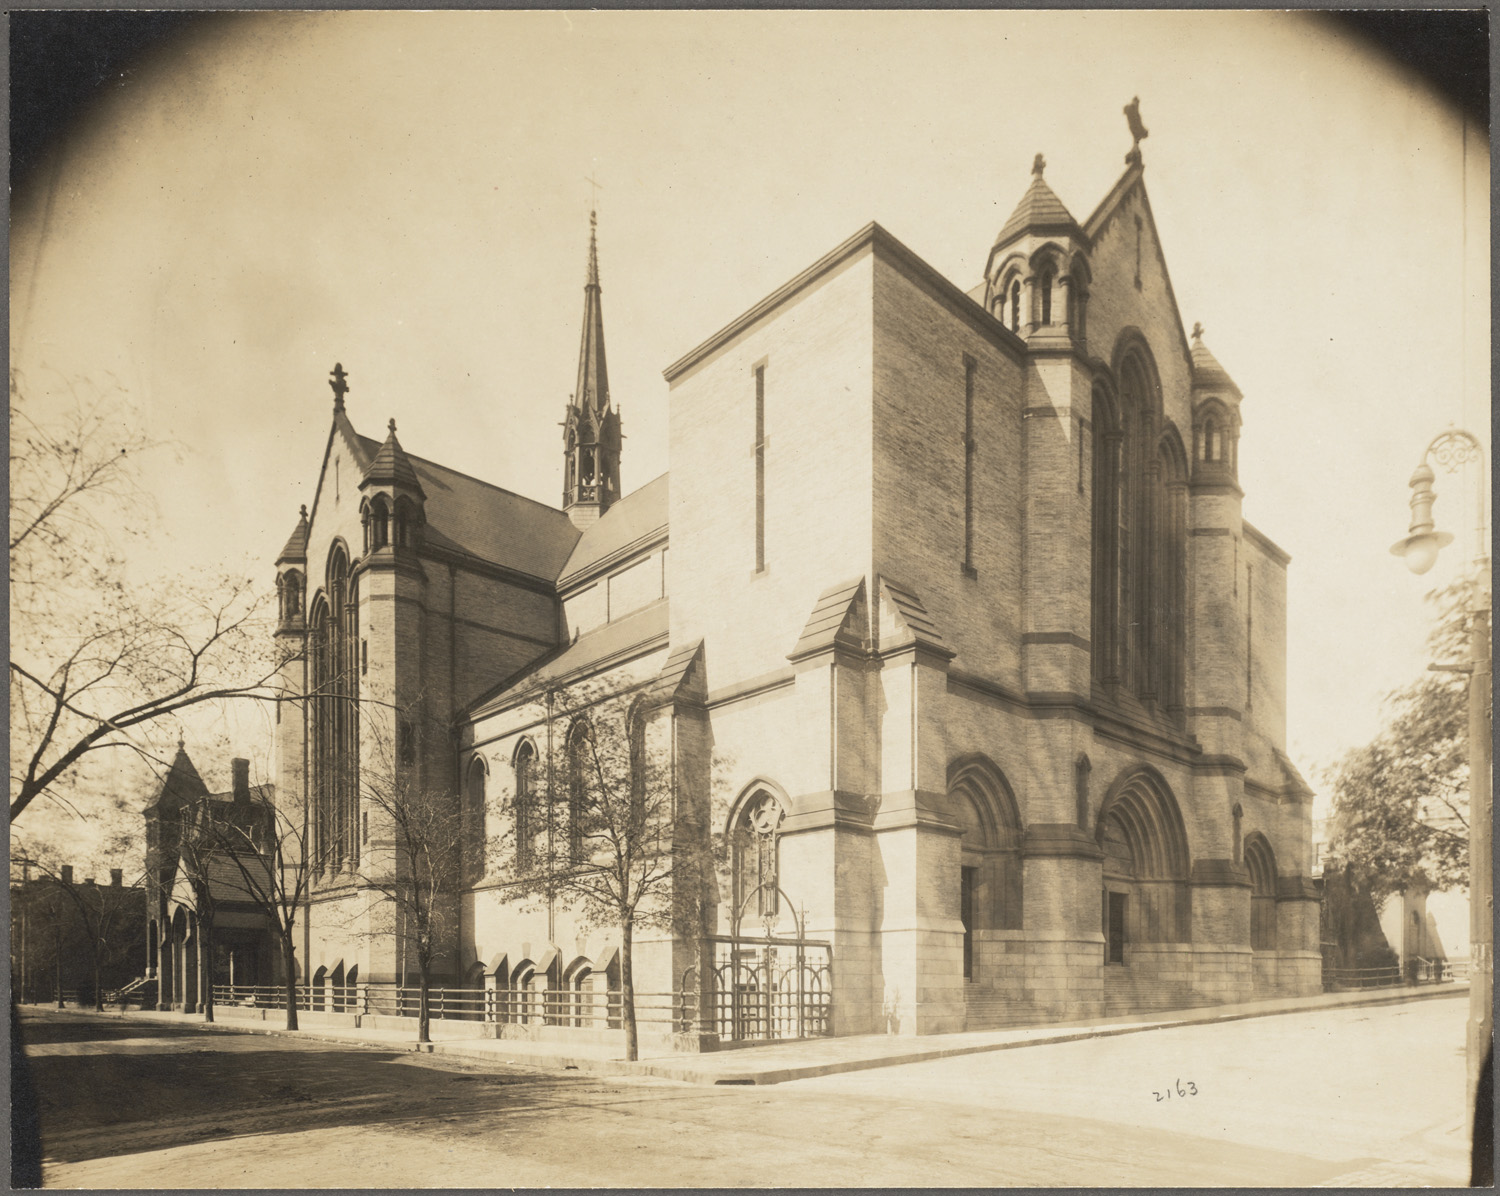 Historic photograph of South Boston's Gate of Heaven church, established in 1866.